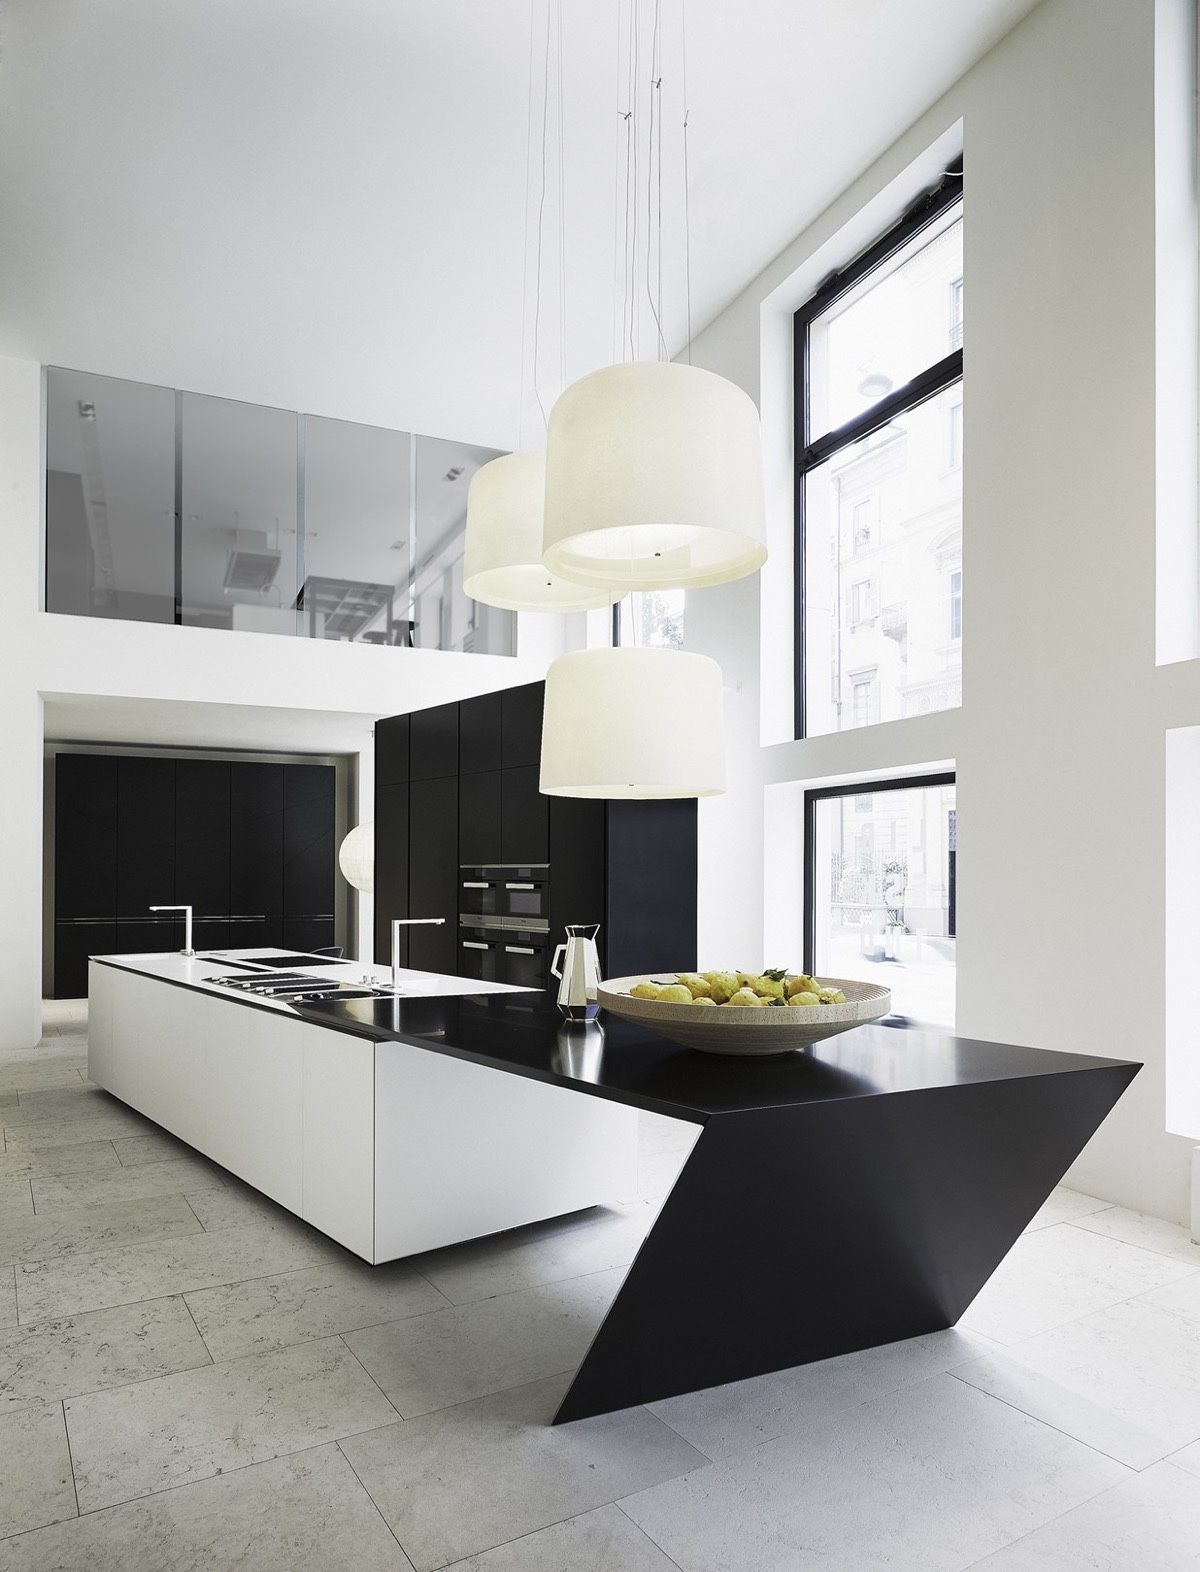 50 Modern Kitchen Designs That Use Unconventional Geometry | Day 1 on eccentric kitchen, cool kitchen, fresh kitchen, honest kitchen, old chimney in kitchen, eclectic kitchen, wood floors in kitchen, smart kitchen, awkward kitchen, old-fashioned kitchen, contemporary kitchen, flexible kitchen, kooky kitchen, entertaining kitchen, original kitchen, industrial kitchen, ad hoc kitchen, wood countertops for kitchen,